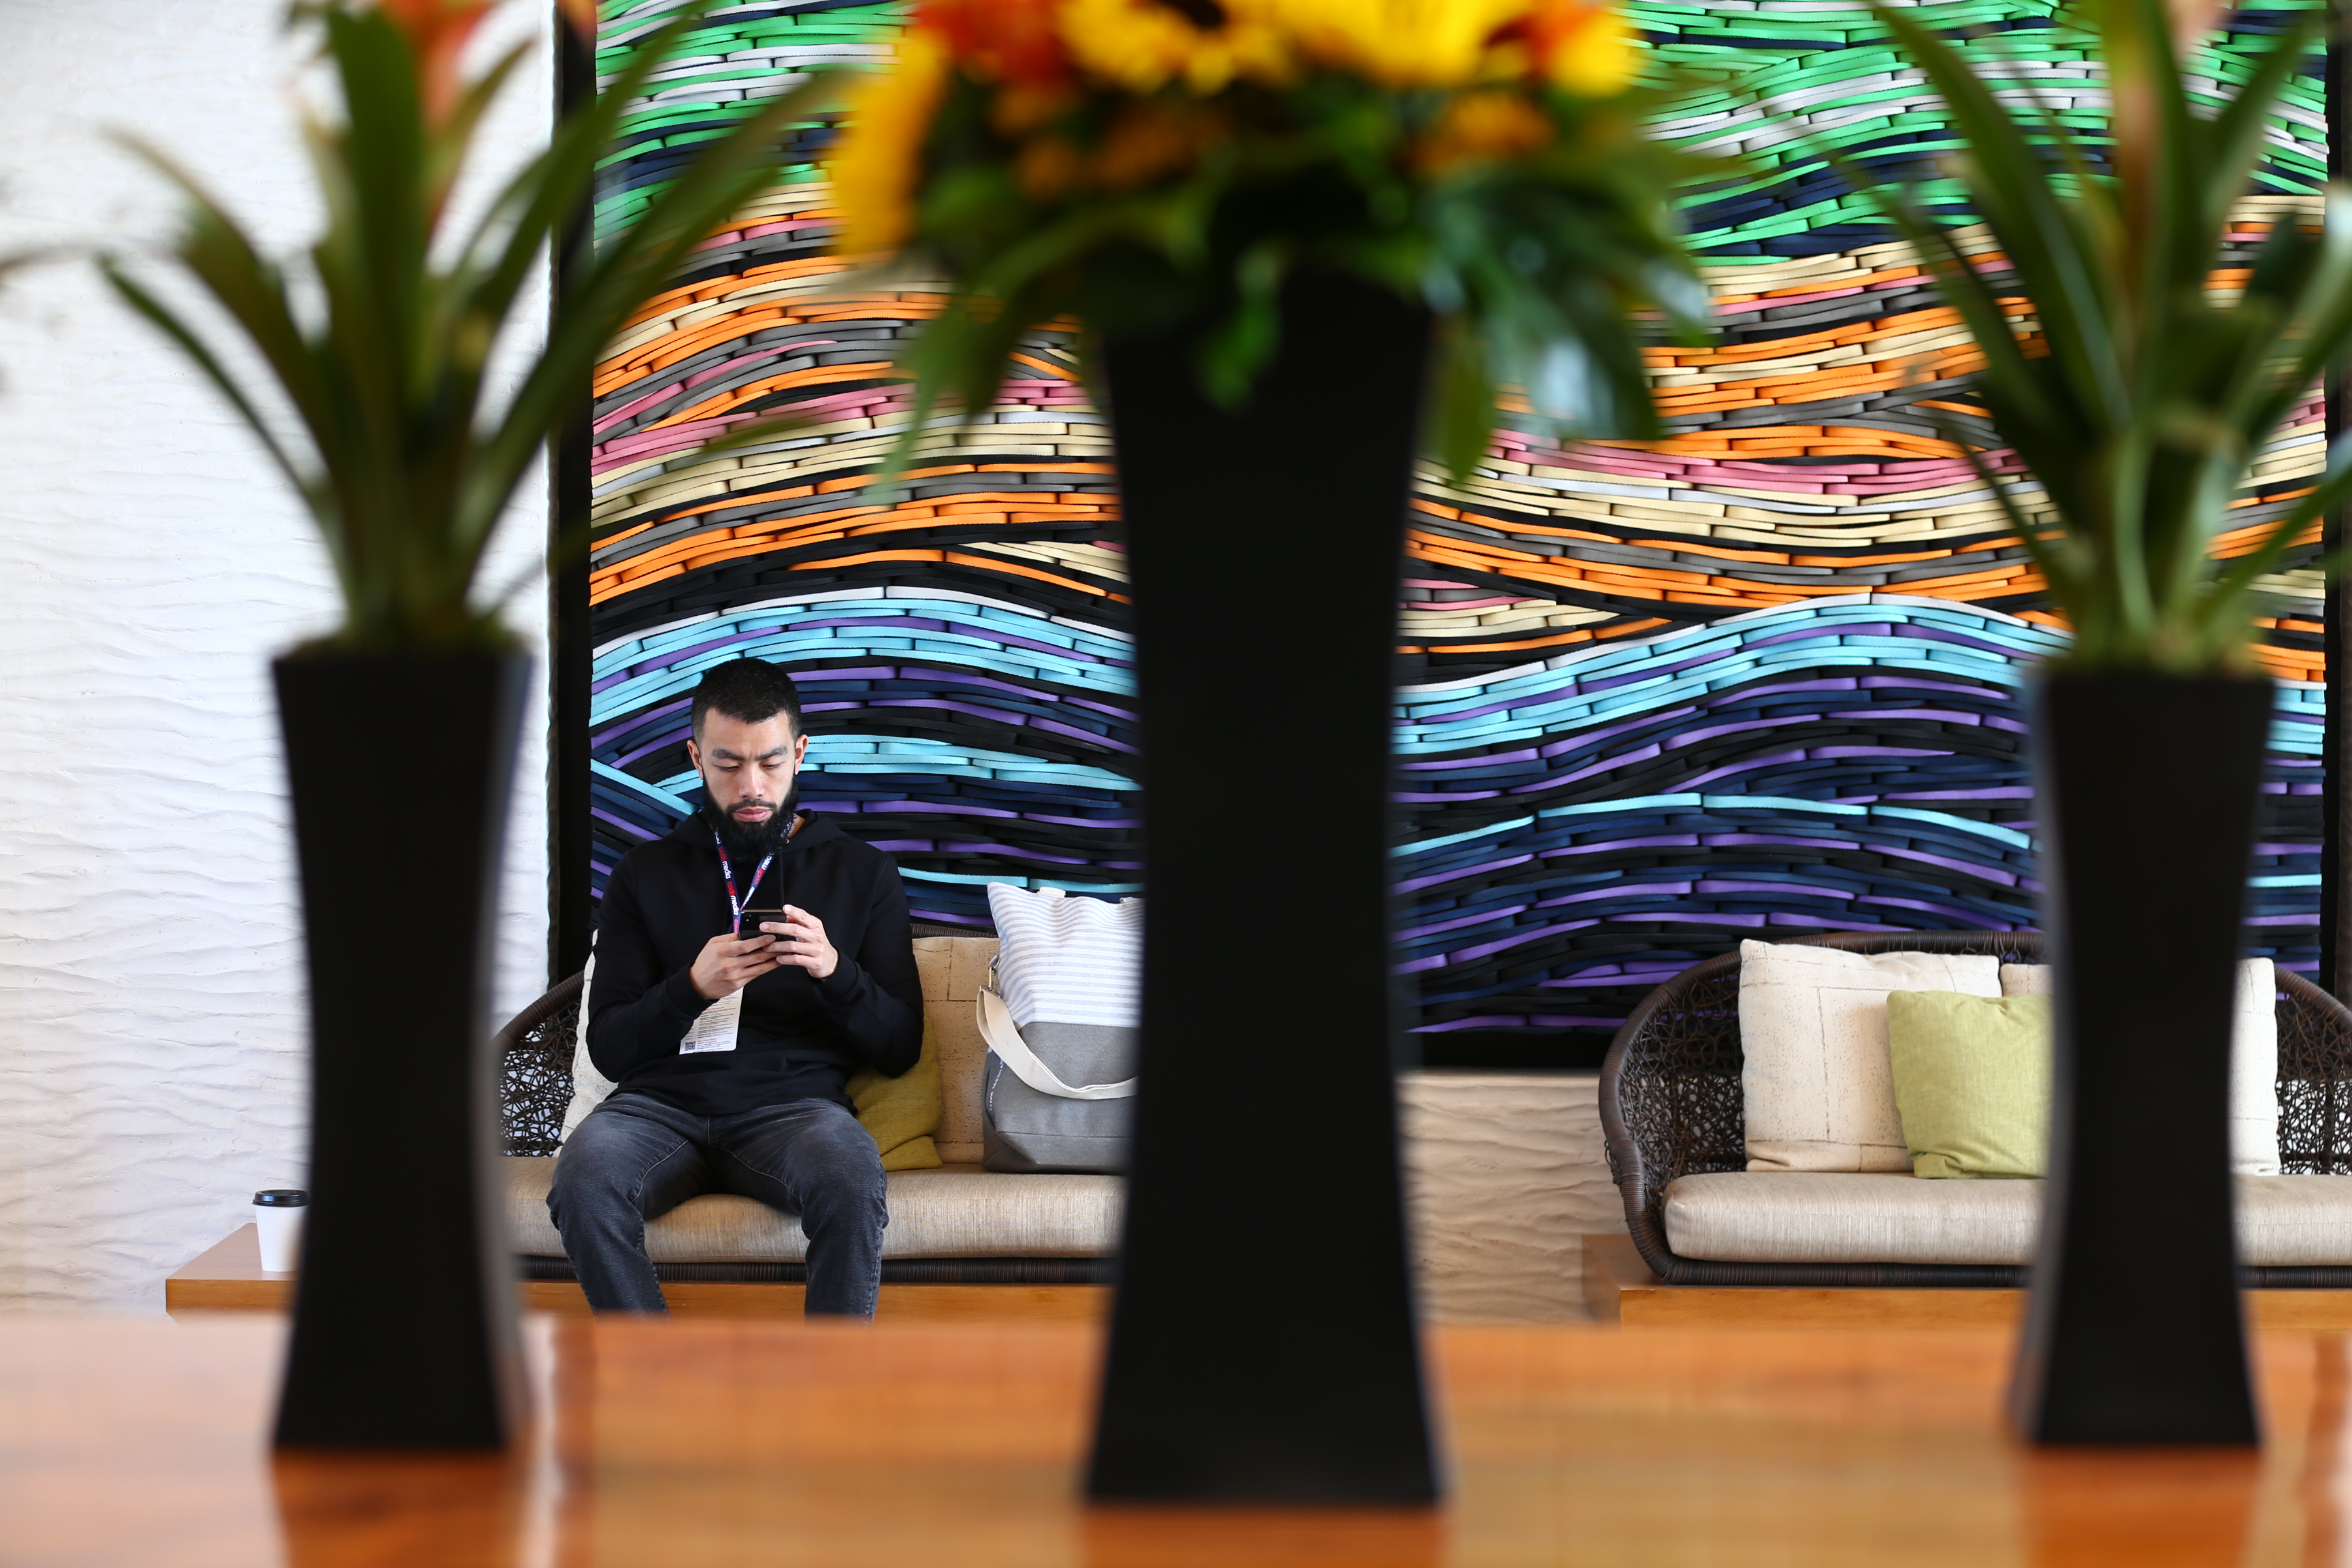 A man sits in a hotel lobby looking at his phone.